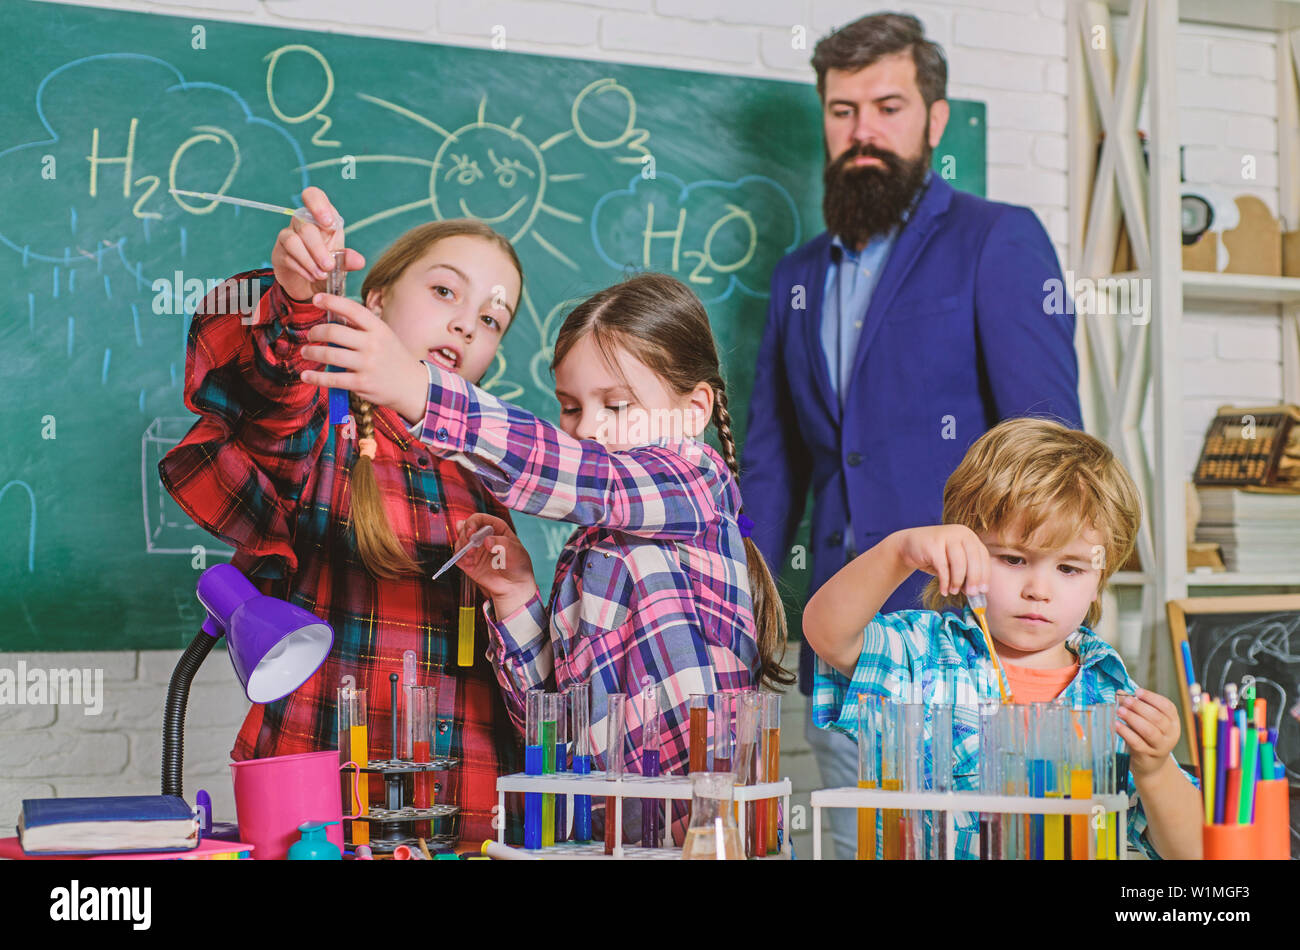 School chemistry laboratory. back to school. Educational concept. Pupils in the chemistry class. happy children teacher. children scientists making experiments in laboratory. Biological samples. - Stock Image